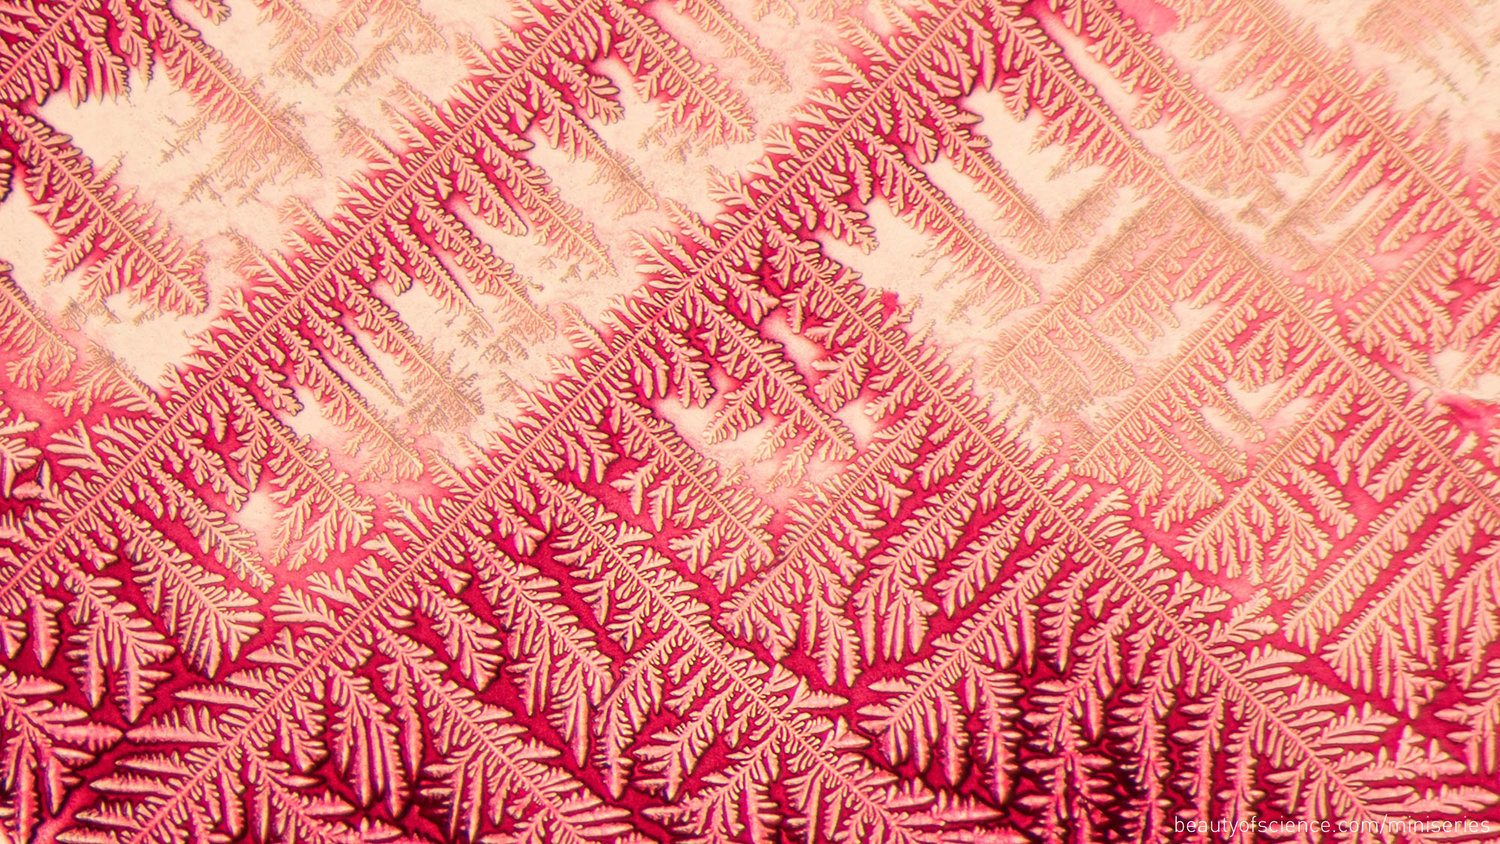 Image: Ammonium Chloride crystalization in a red pigment underneath a microscope!